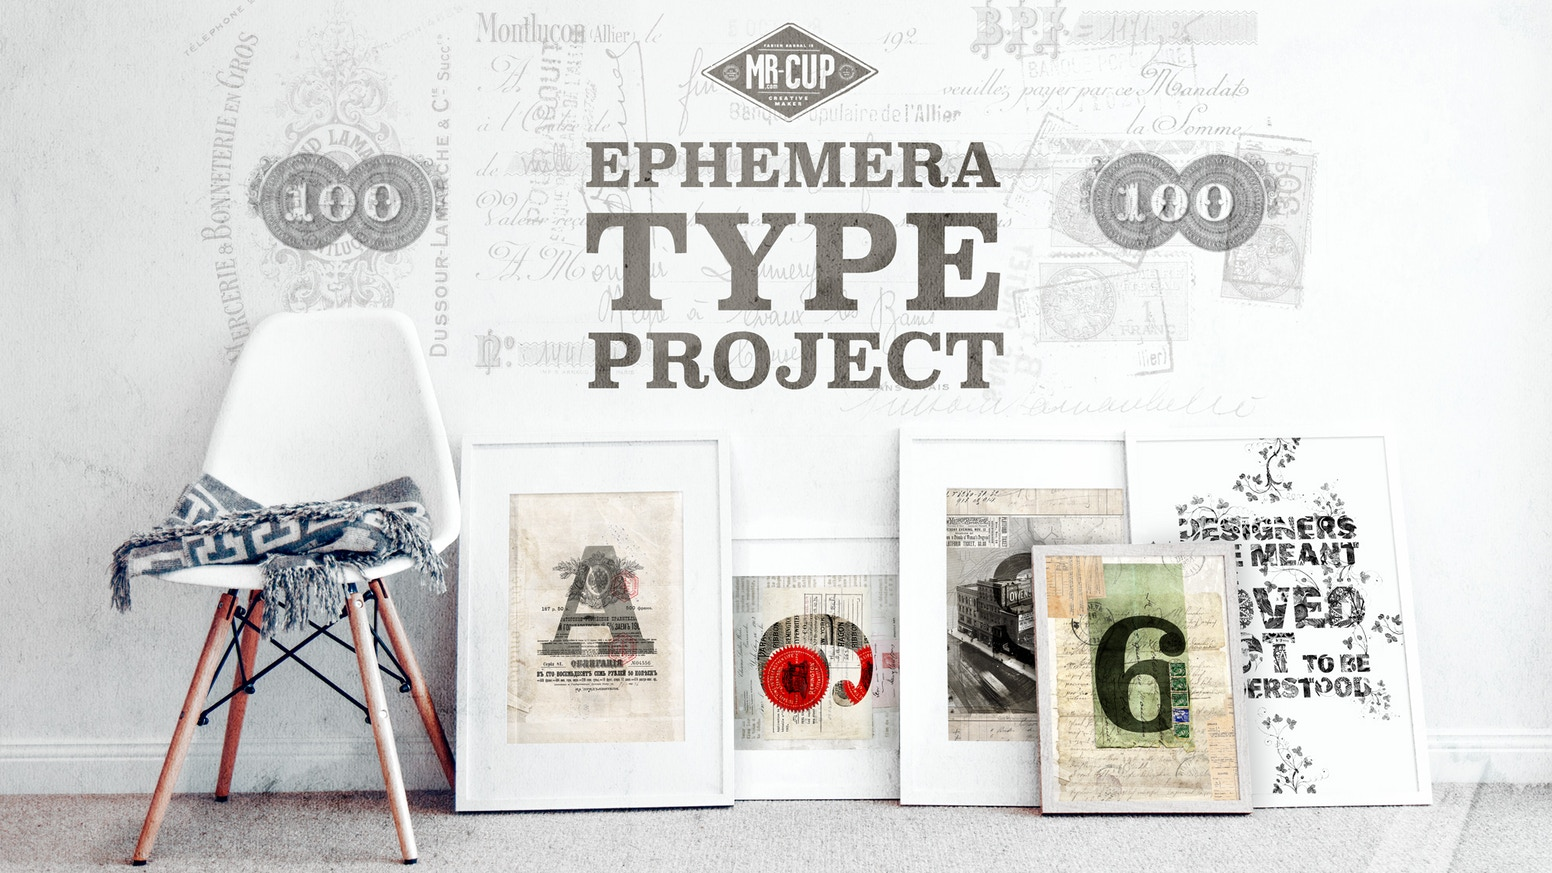 A limited-edition serie of posters and postcards for the 26 letters and 10 numbers based on my collection and passion for Ephemera.